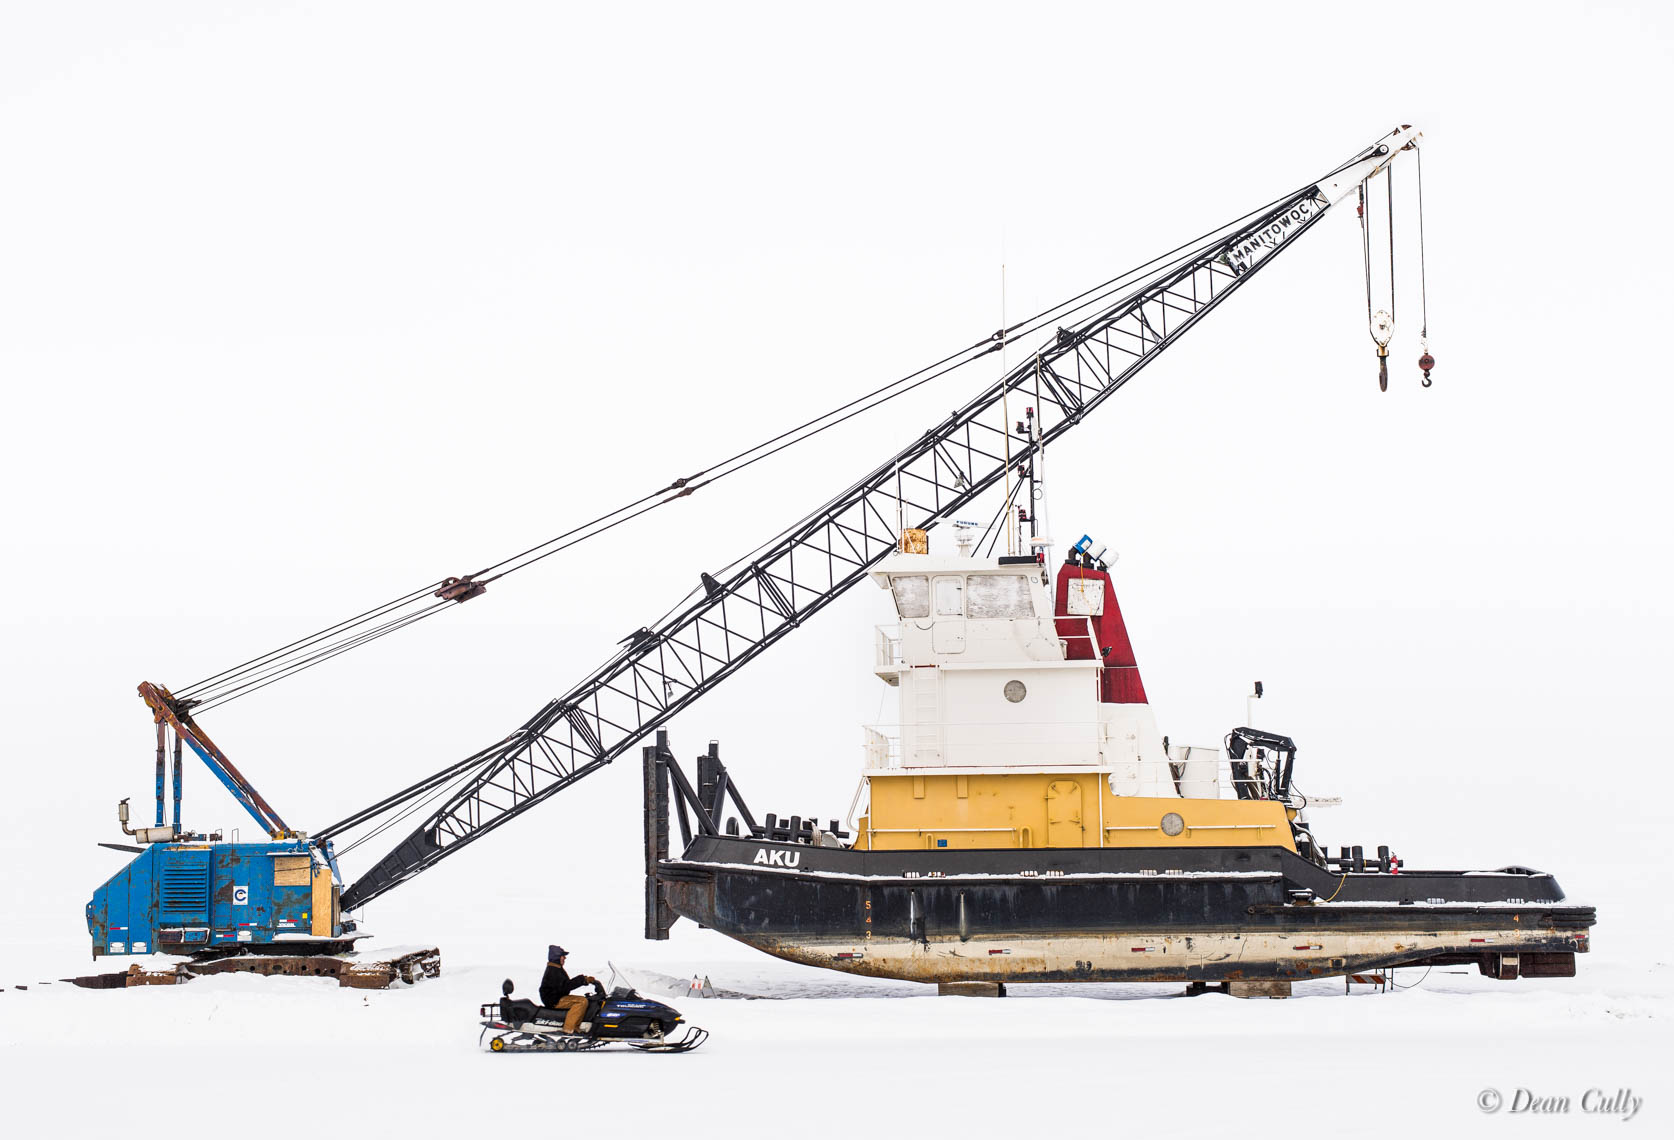 Kotzebue Still-Life with Snowmachine: crane, snowmobile and tugboat in whiteout repose;  northwestern Alaska